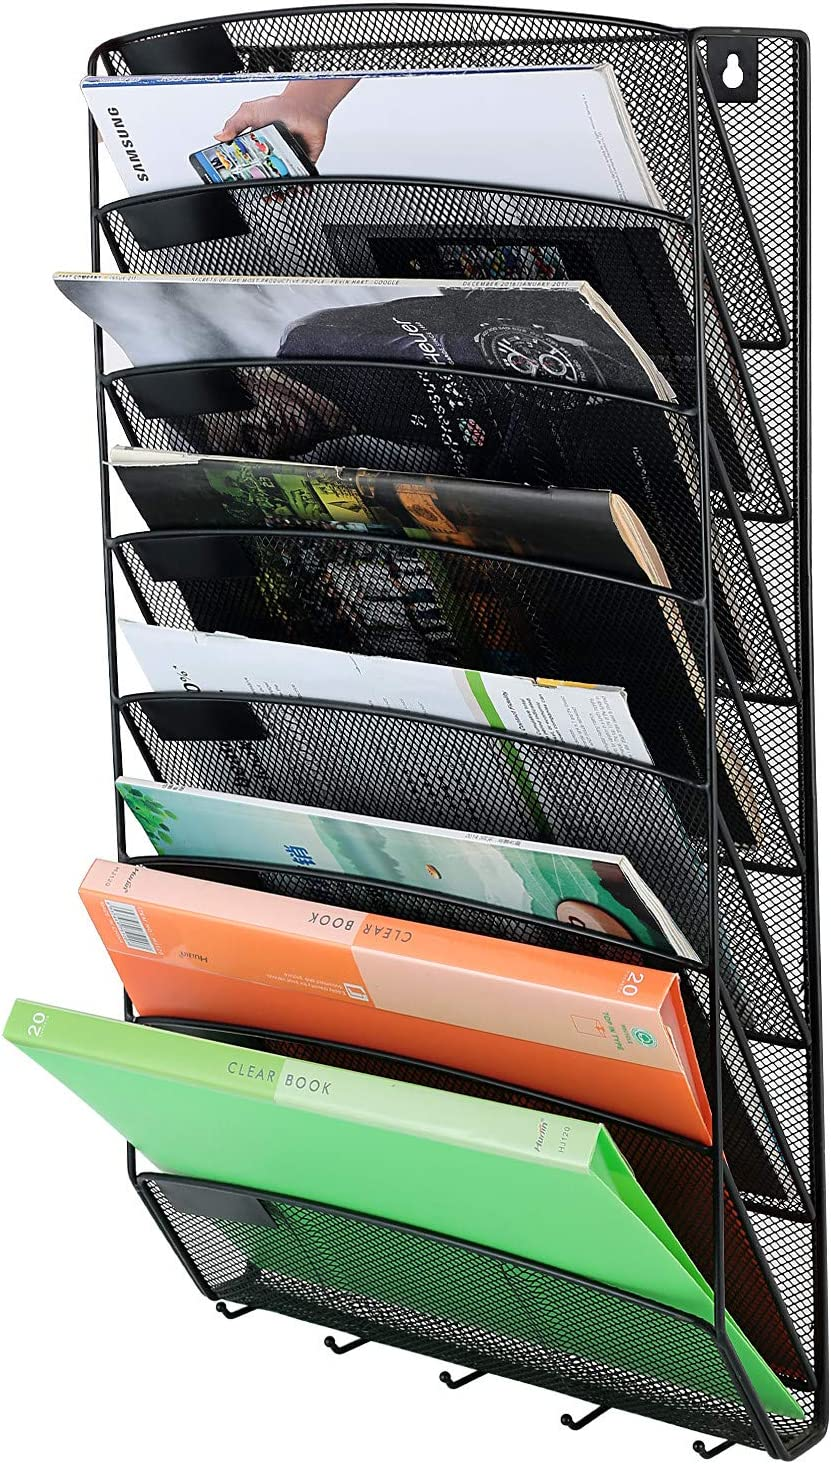 Samstar 8 Pocket Wall File Organizer, Mesh Hanging File Holder Wall Mount Paper Letter Organizer, Magazine Rack, Black : Office Products